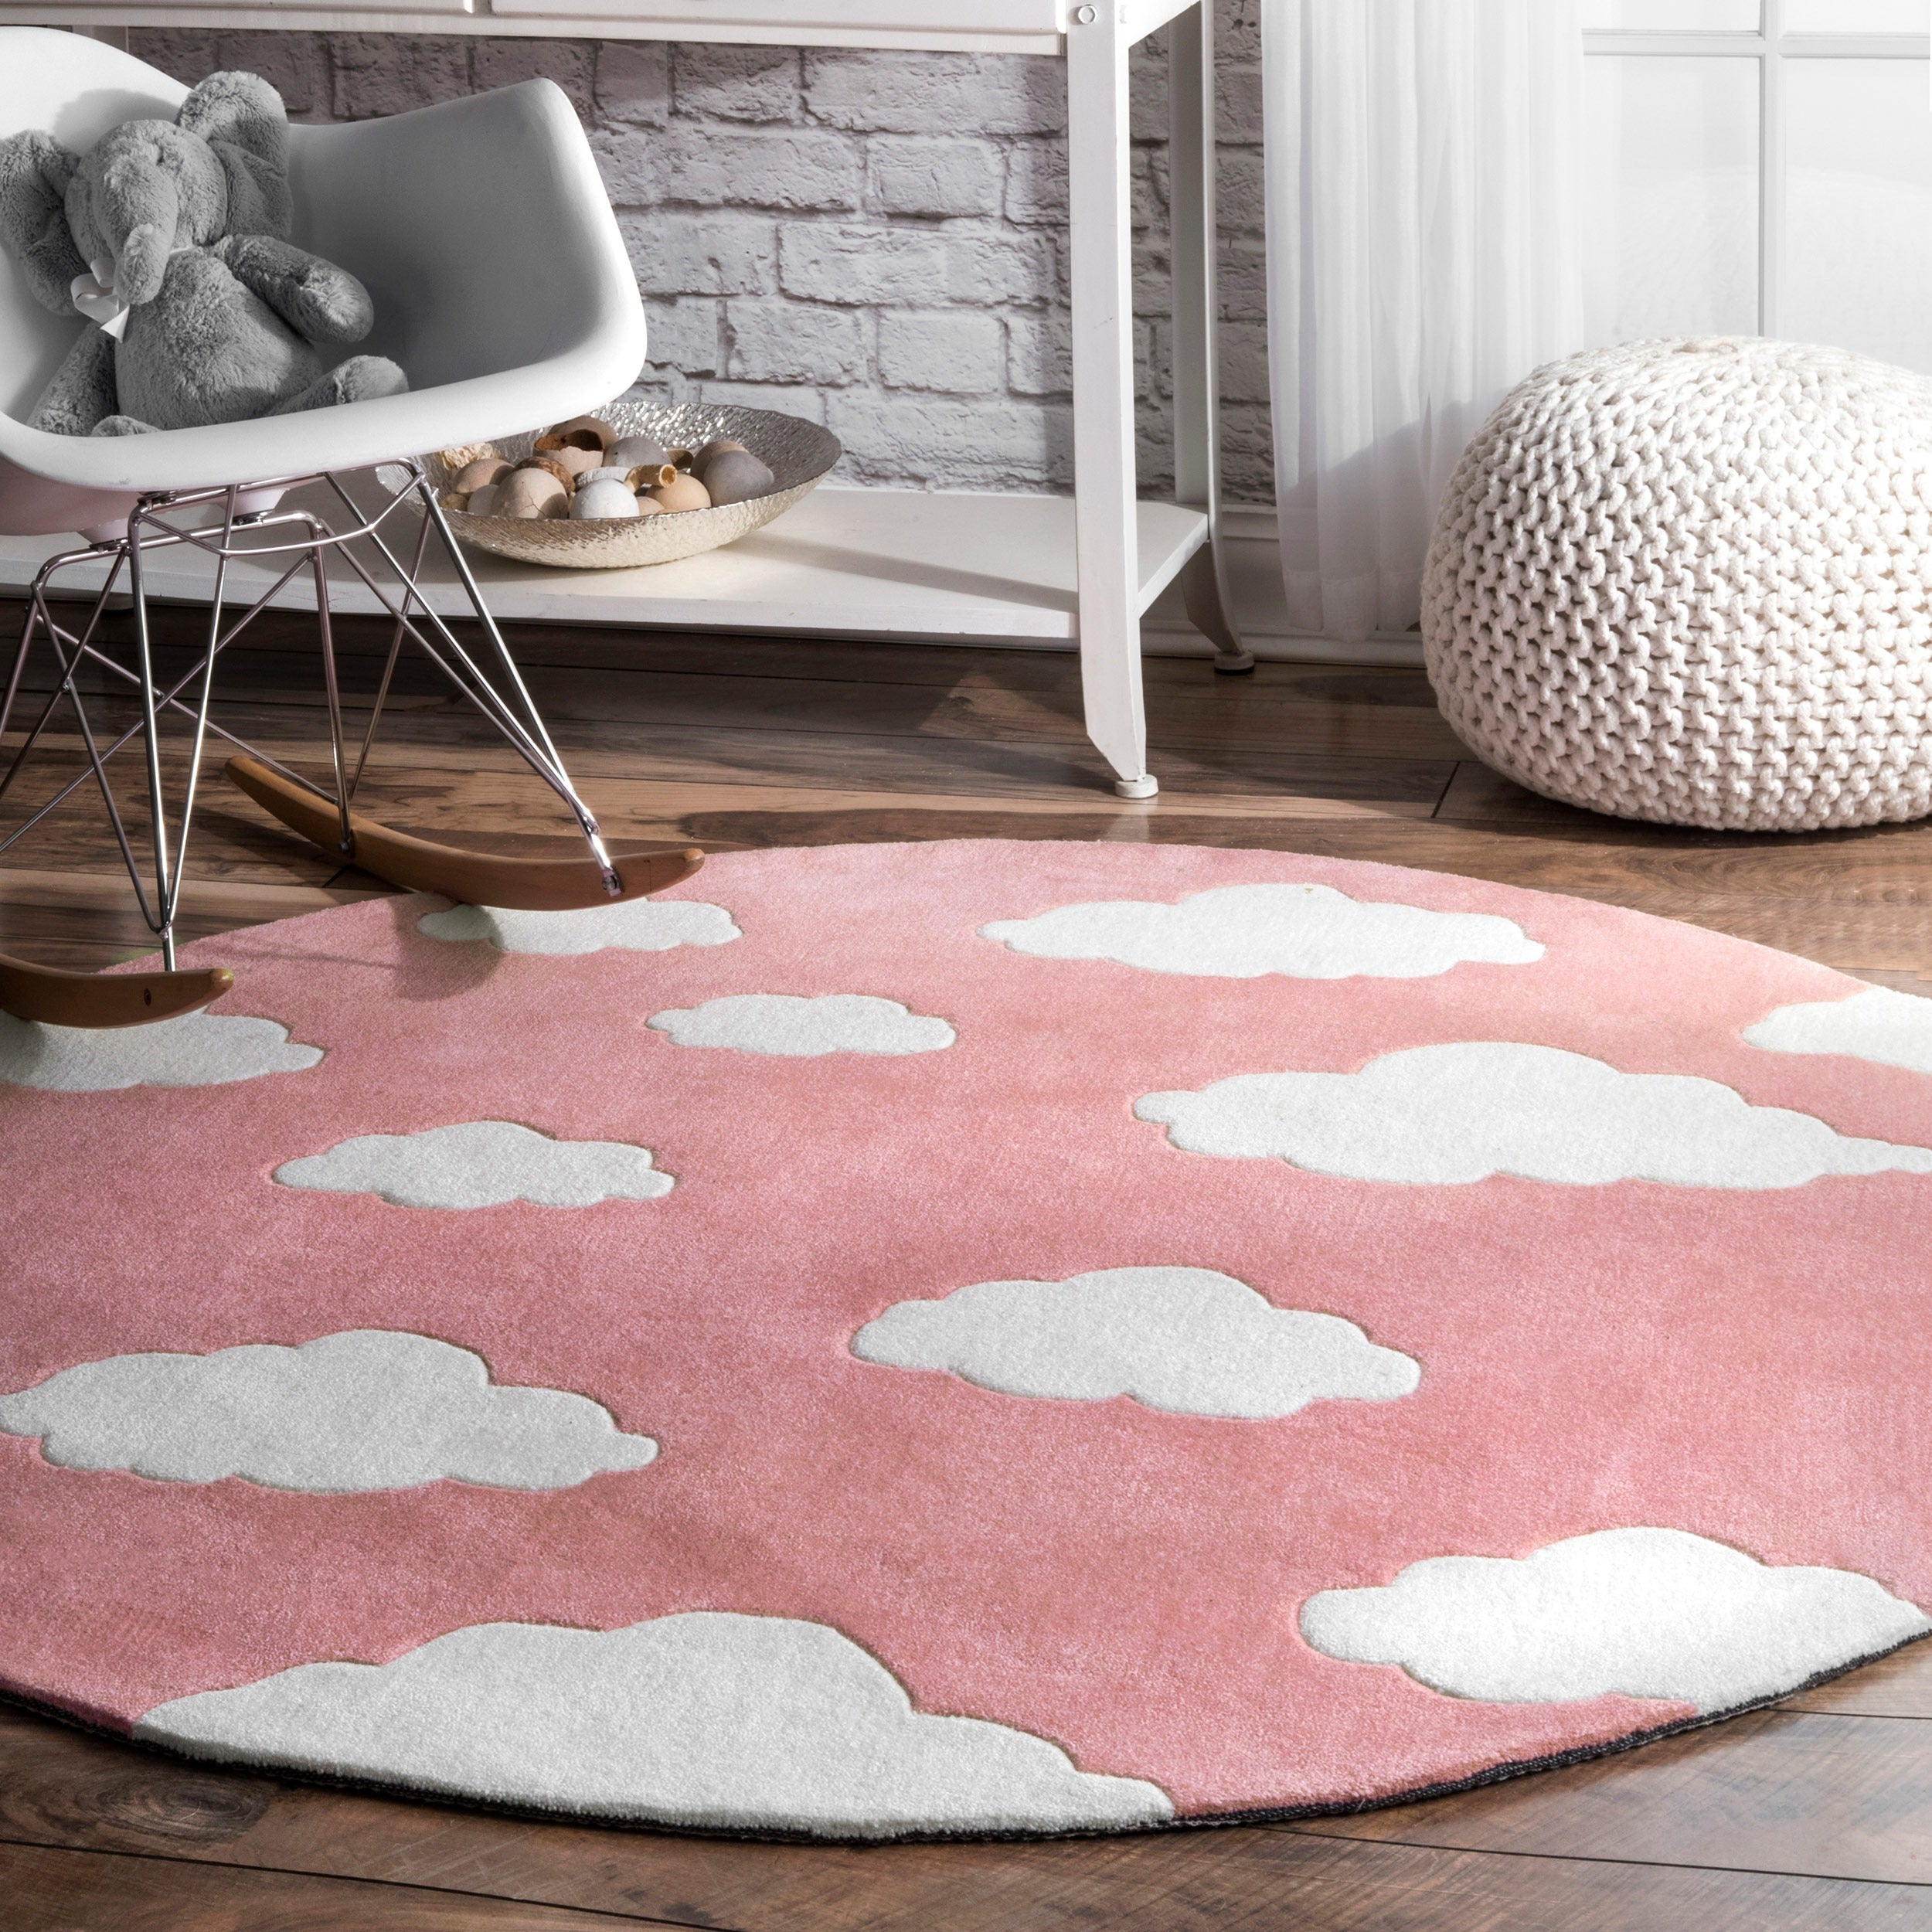 throw modern polypropylene top round green living class shag nursery first pink lavender white nautical and rug grey area purple black overside gray canada for room trellis rugs light plum